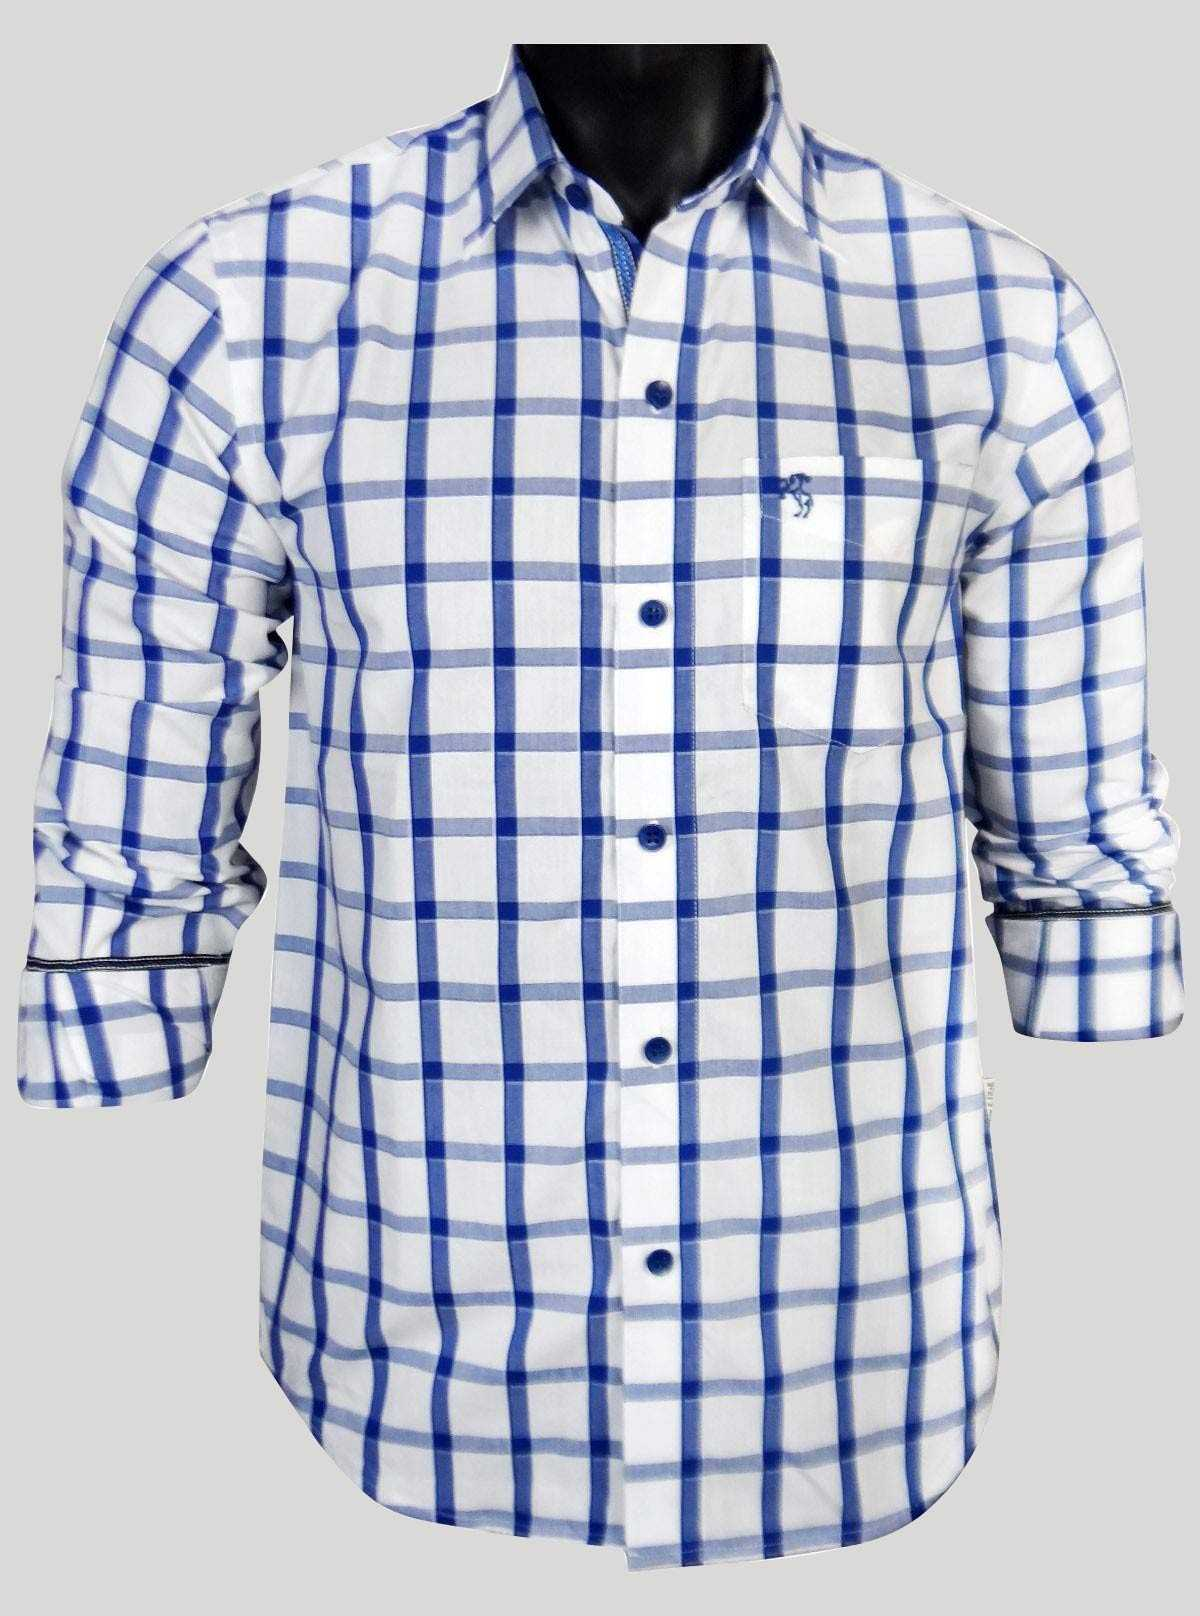 Regular Fit - Ink Blue Check Casual Shirt Boer and Fitch - 1